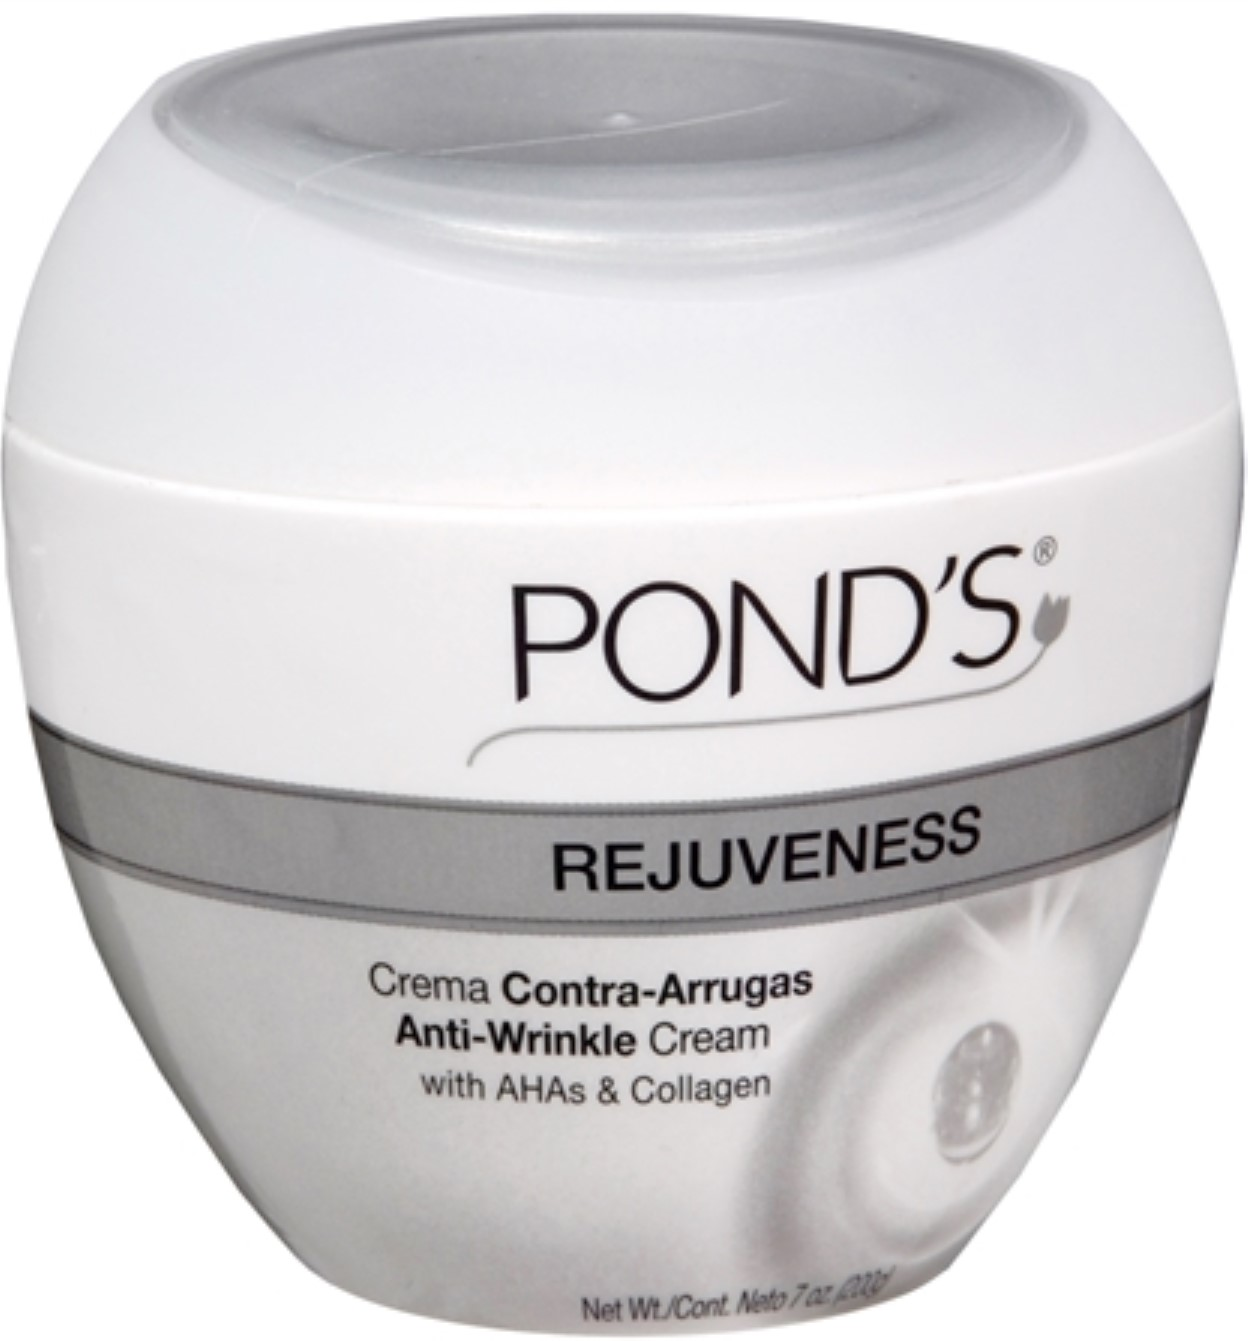 Pond's Rejuveness Anti-Wrinkle Cream 7 oz (Pack of 3)